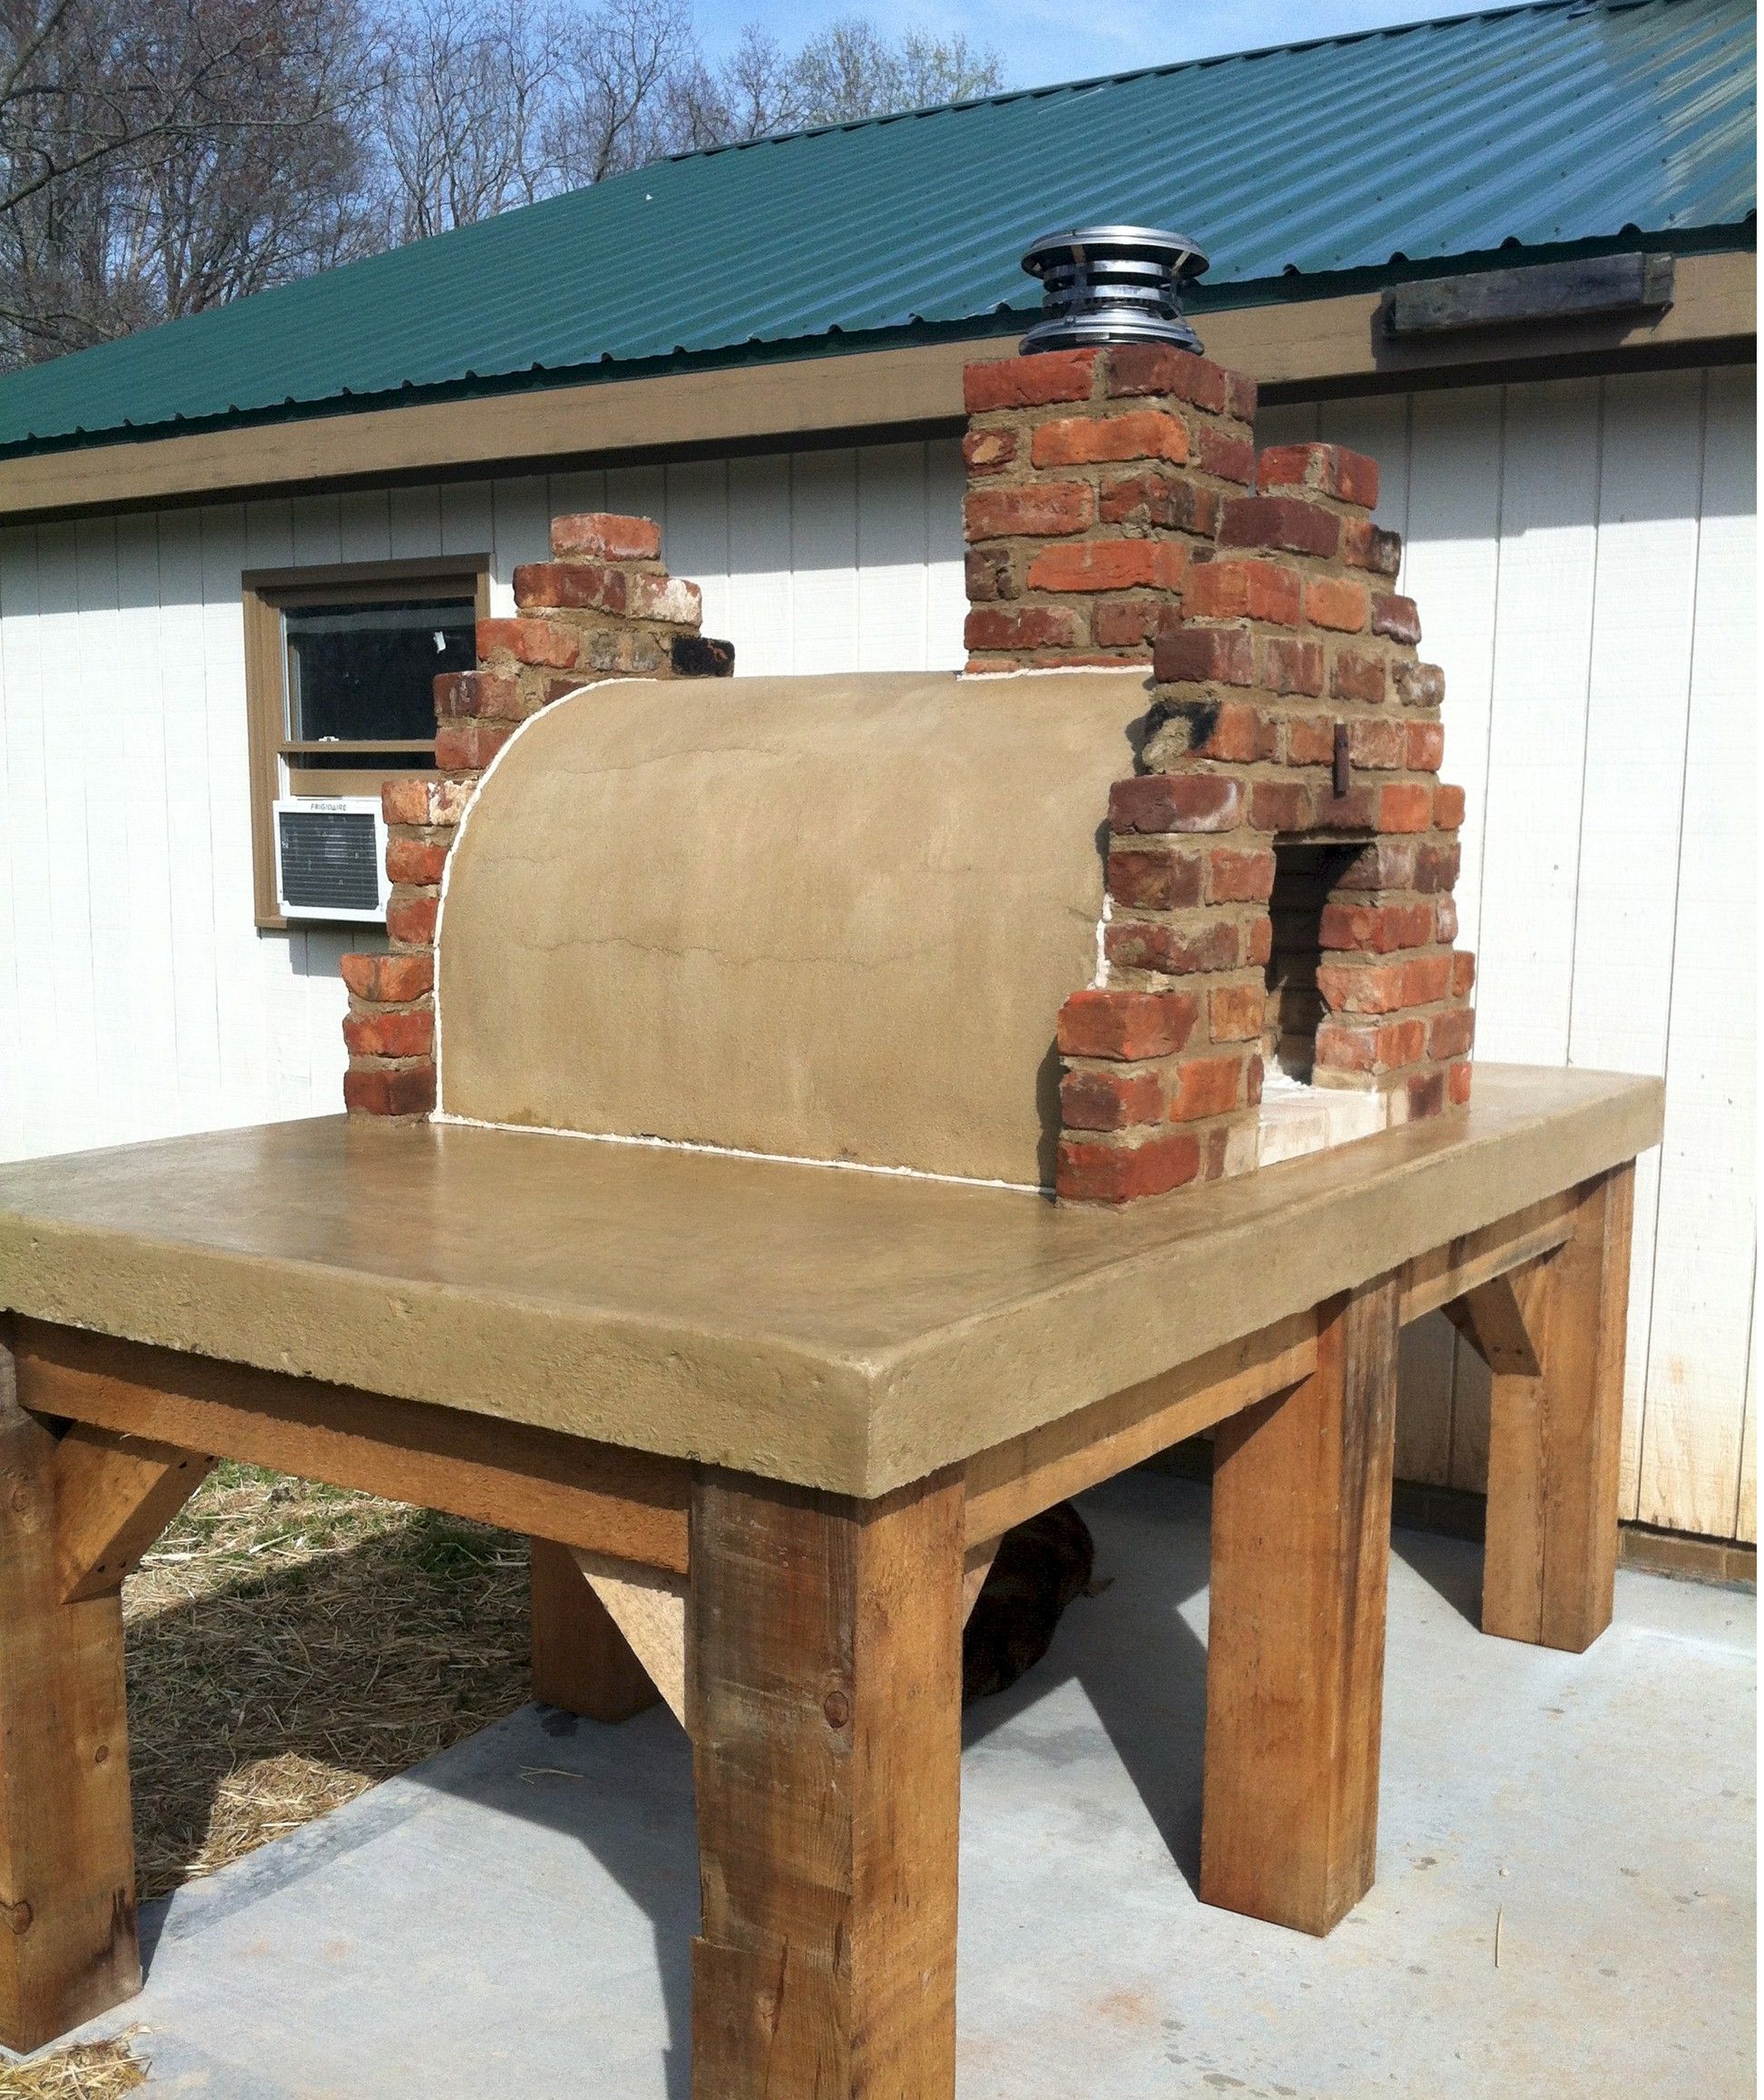 this awesome wood fired brick pizza oven was the mattone barile